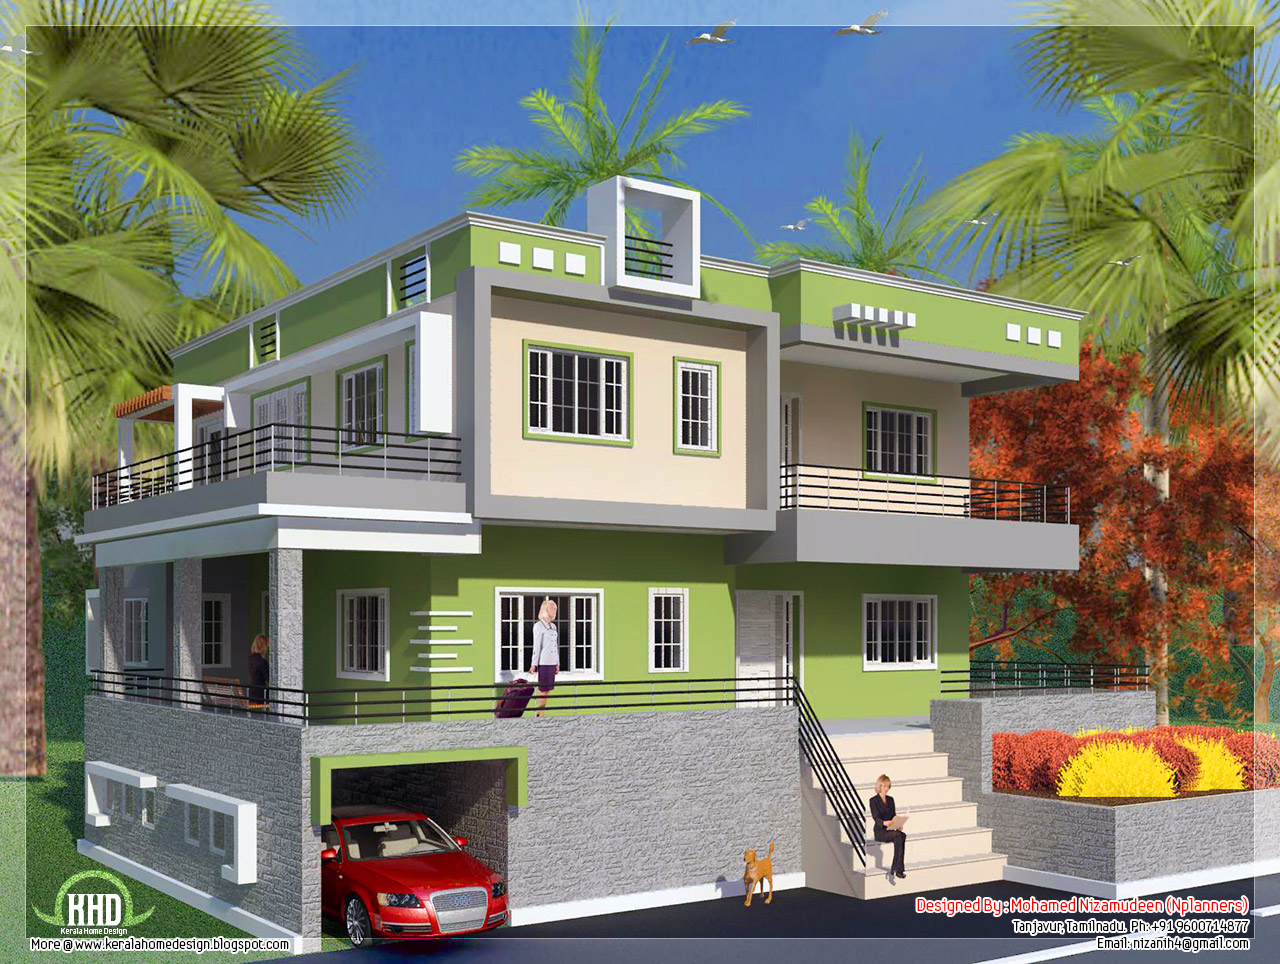 North Indian style minimalist house exterior design | Enter your ...